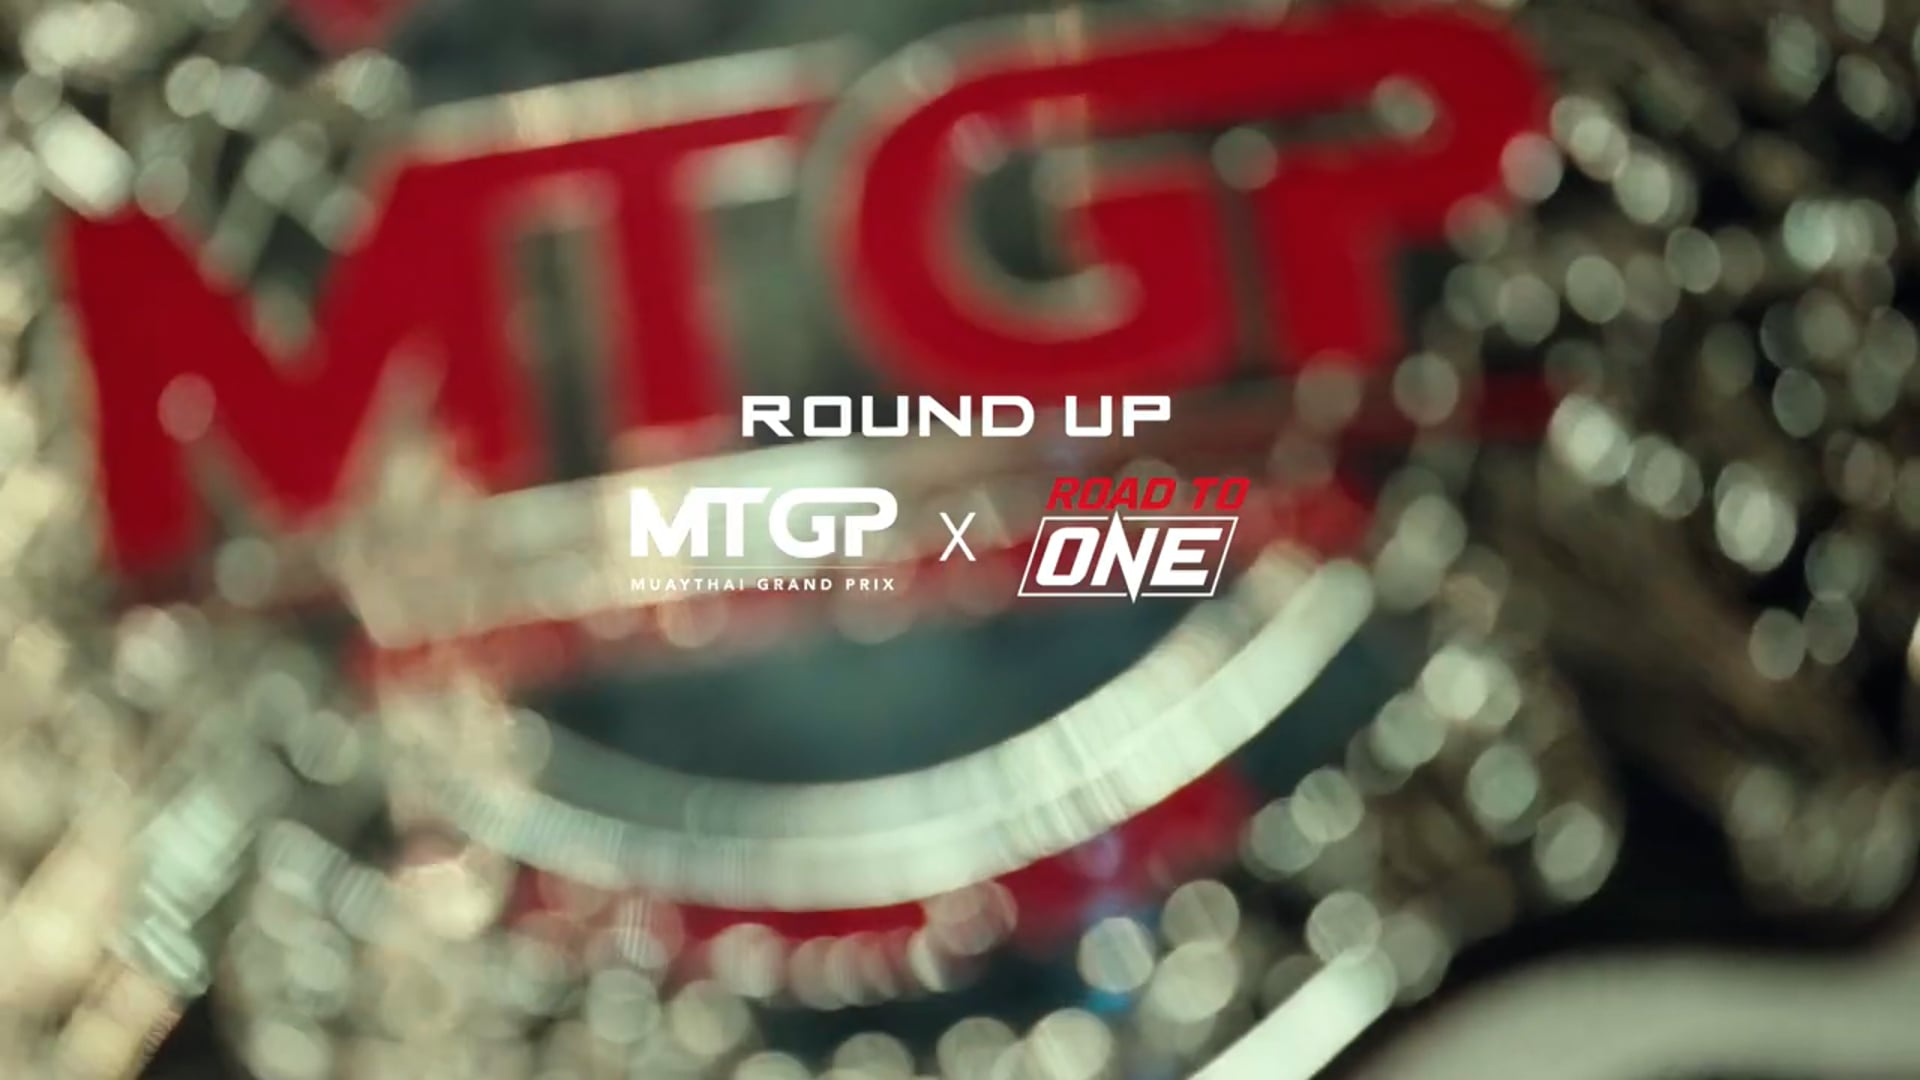 ROUND UP MTGP X Road to ONE 9th Oct